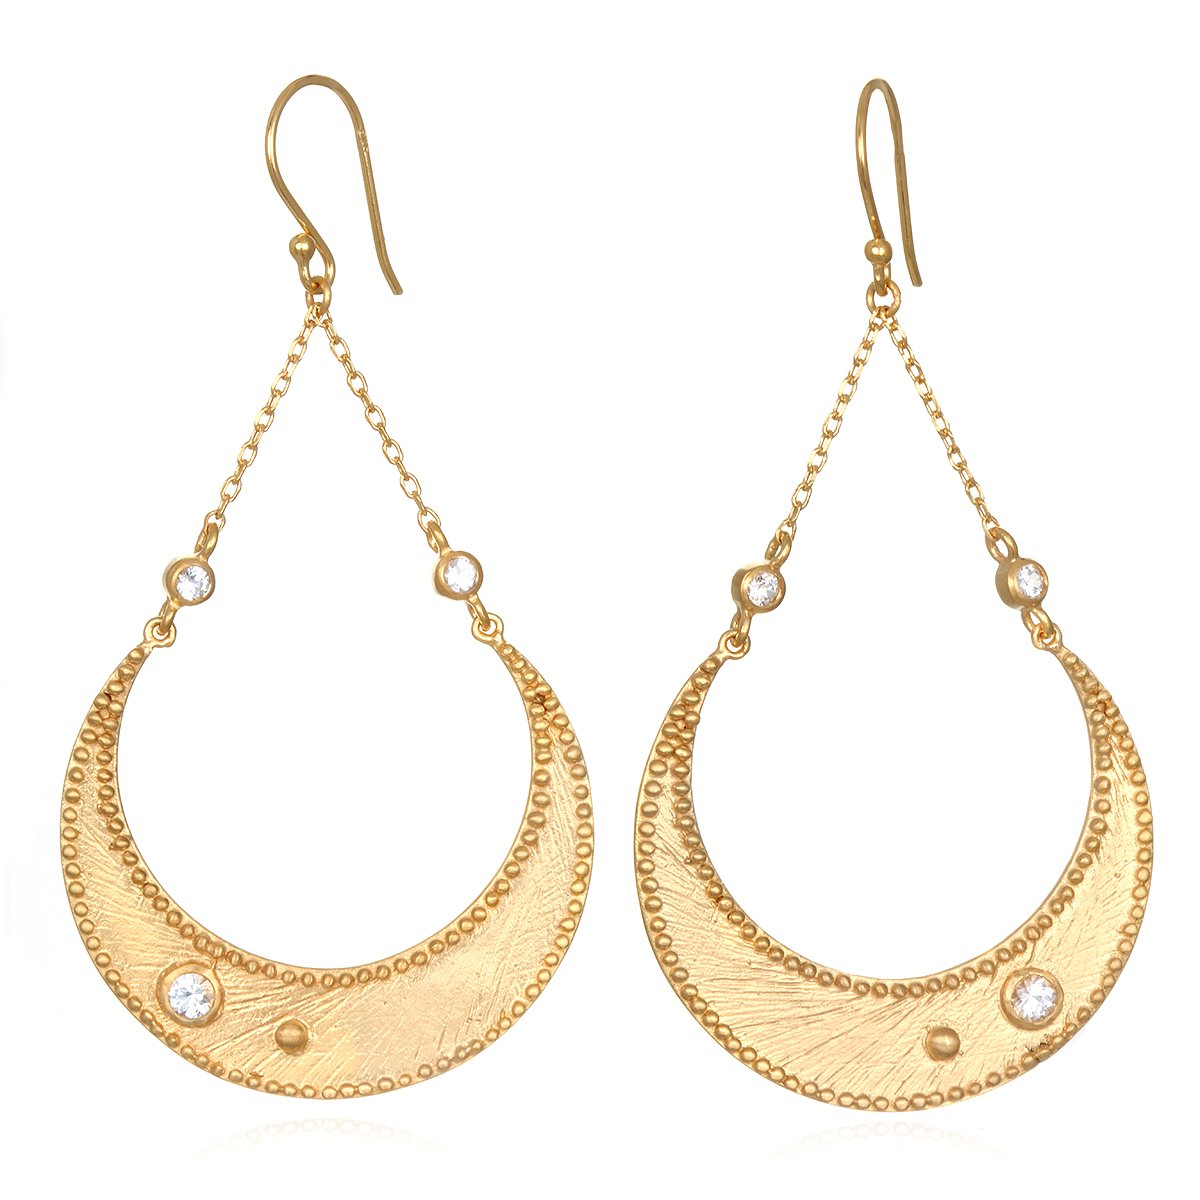 Enchanting Moonbeams Earrings, $149 @satyajewelry.com